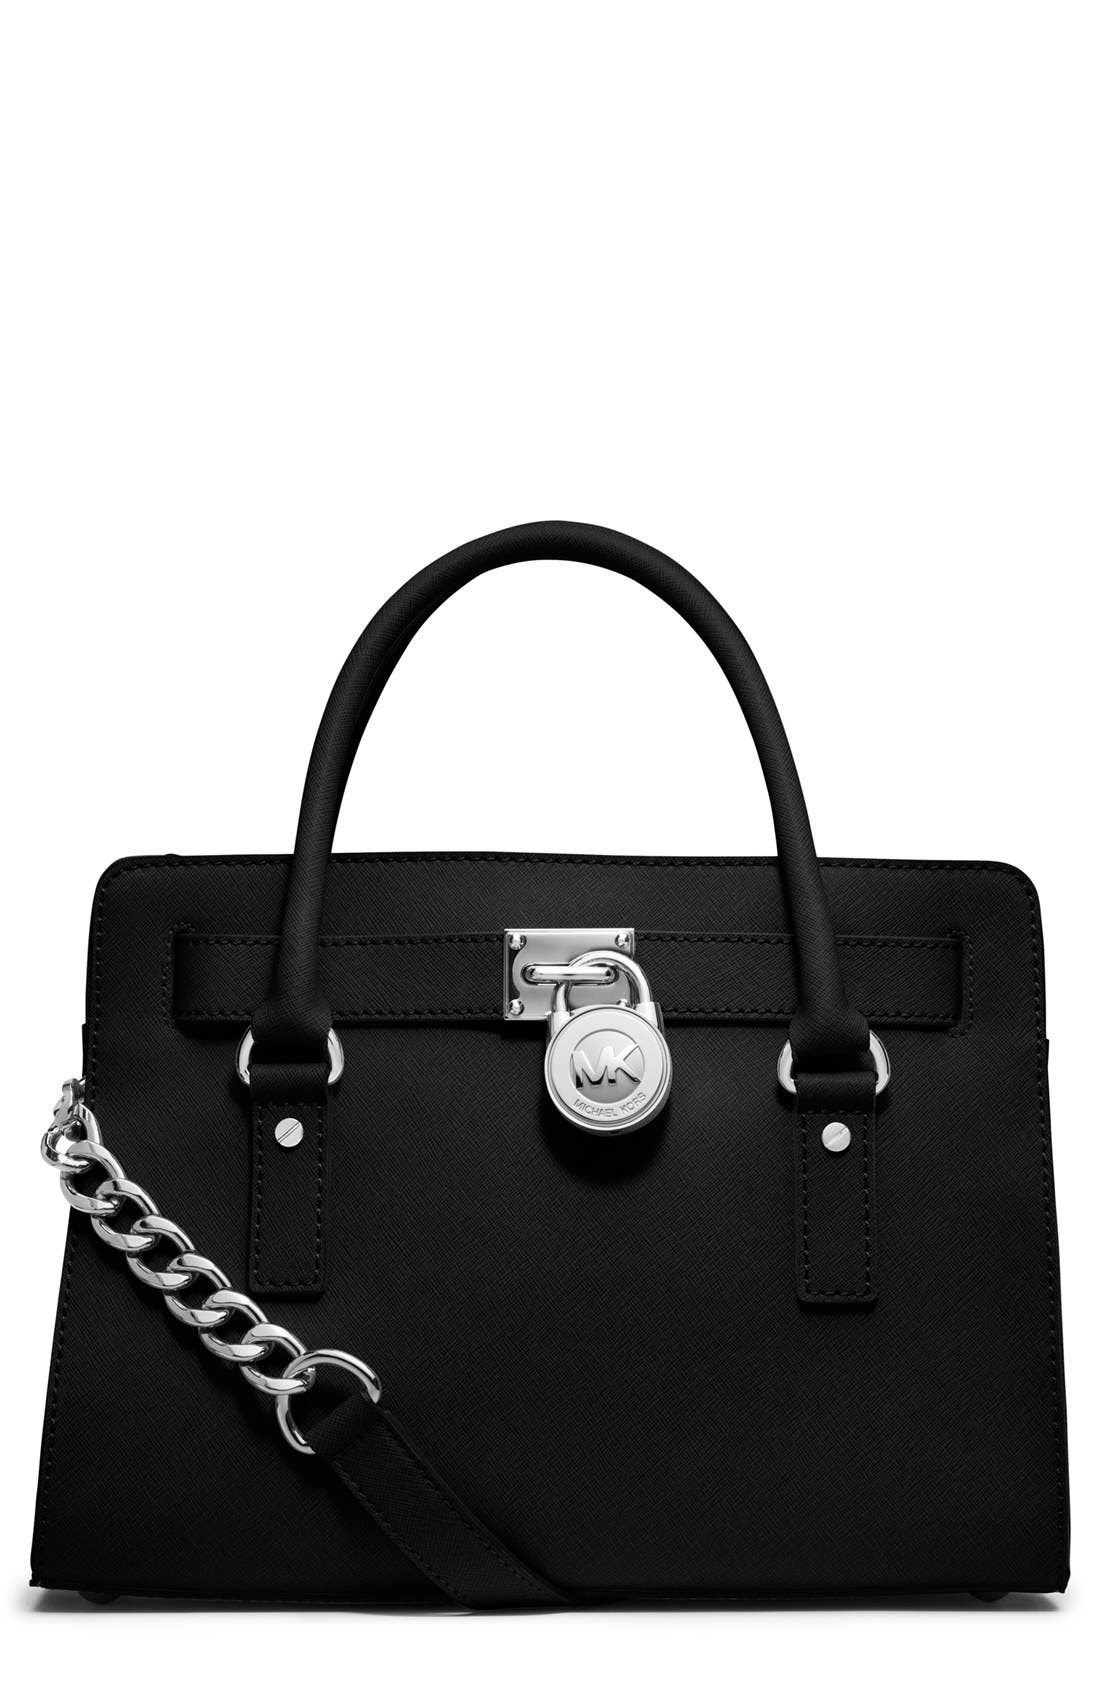 Alternate Image 1 Selected - MICHAEL Michael Kors 'Medium Hamilton' Saffiano Leather Satchel